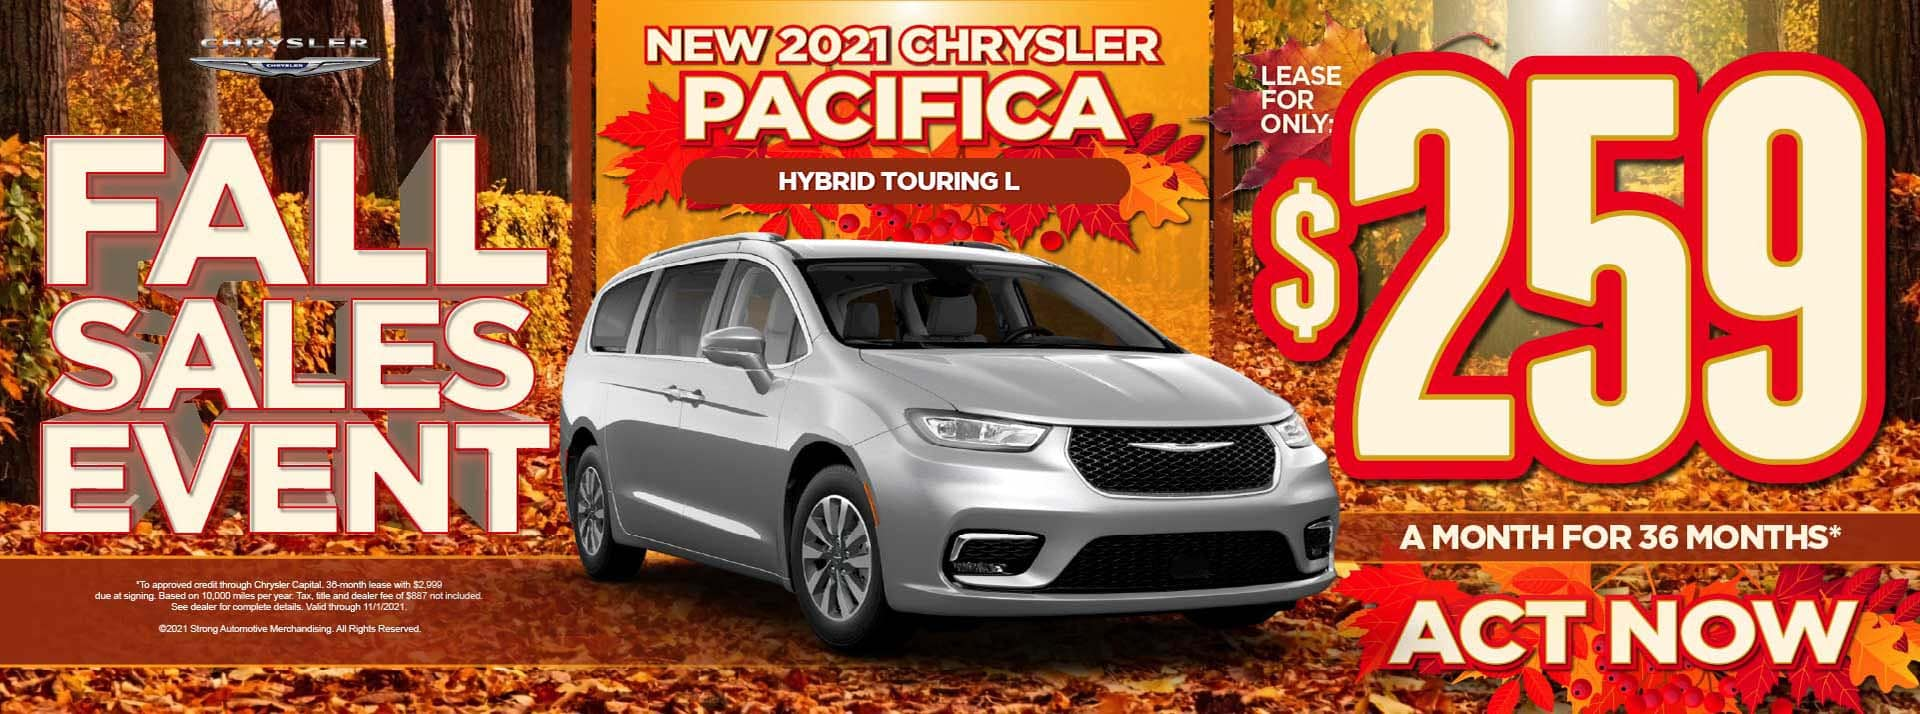 New 2021 Chrysler Pacifica Hybrid Touring L - $259 / mo - ACT NOW